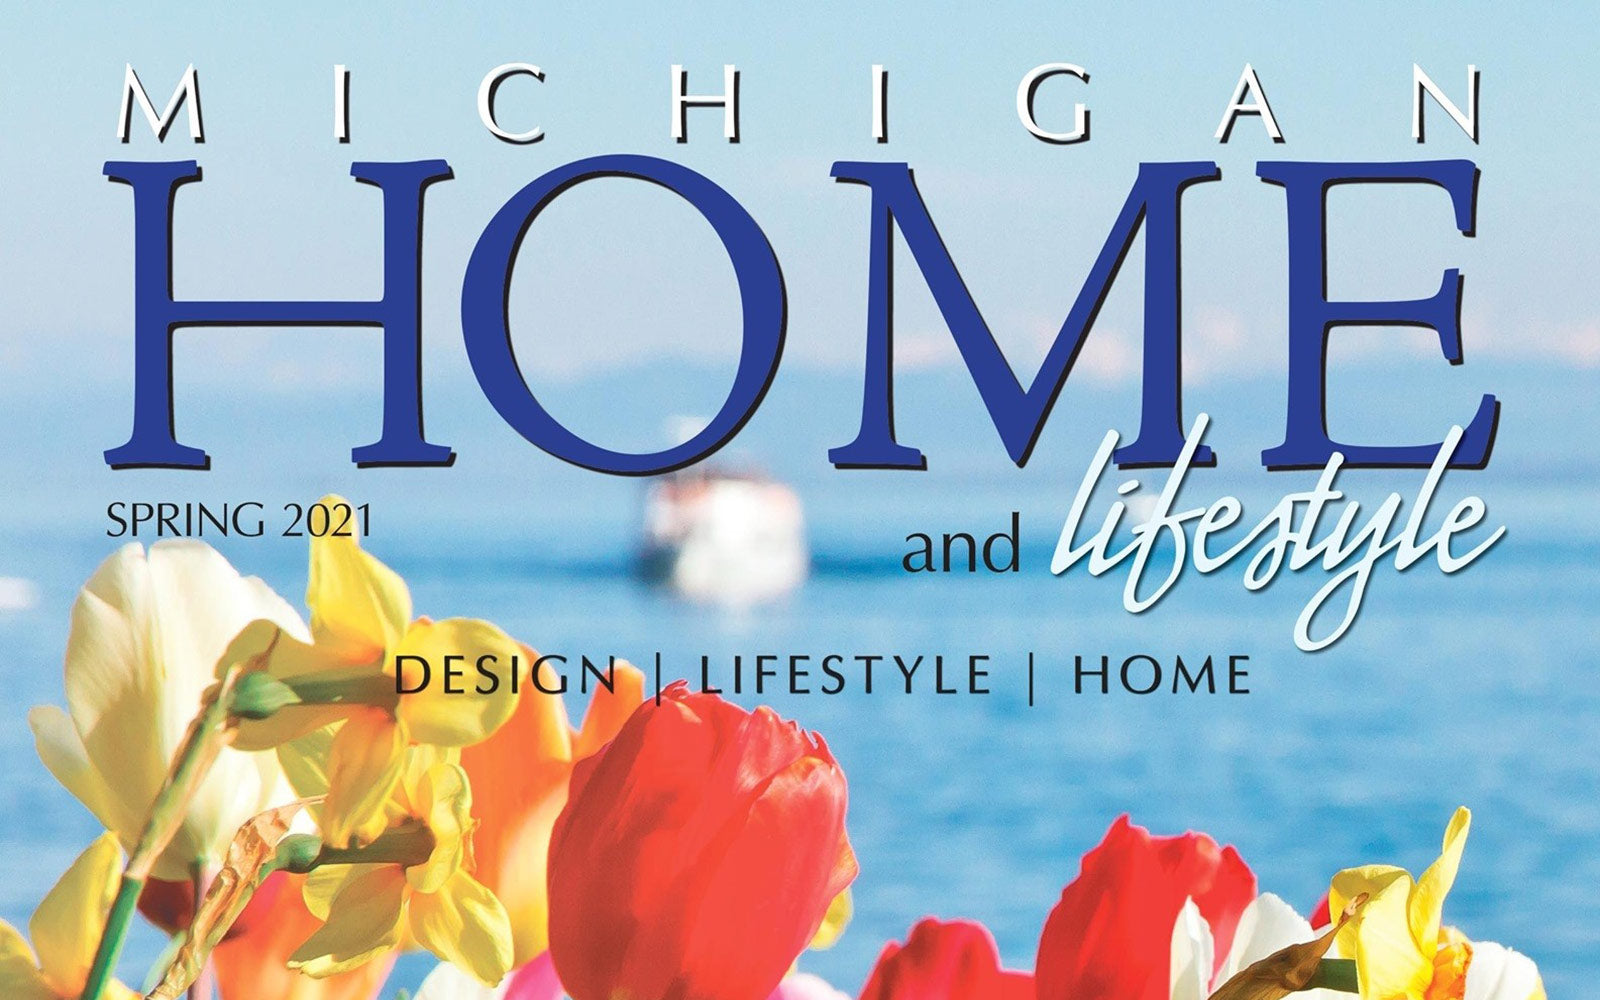 Bright Idea Featured in Michigan Home & Lifestyle